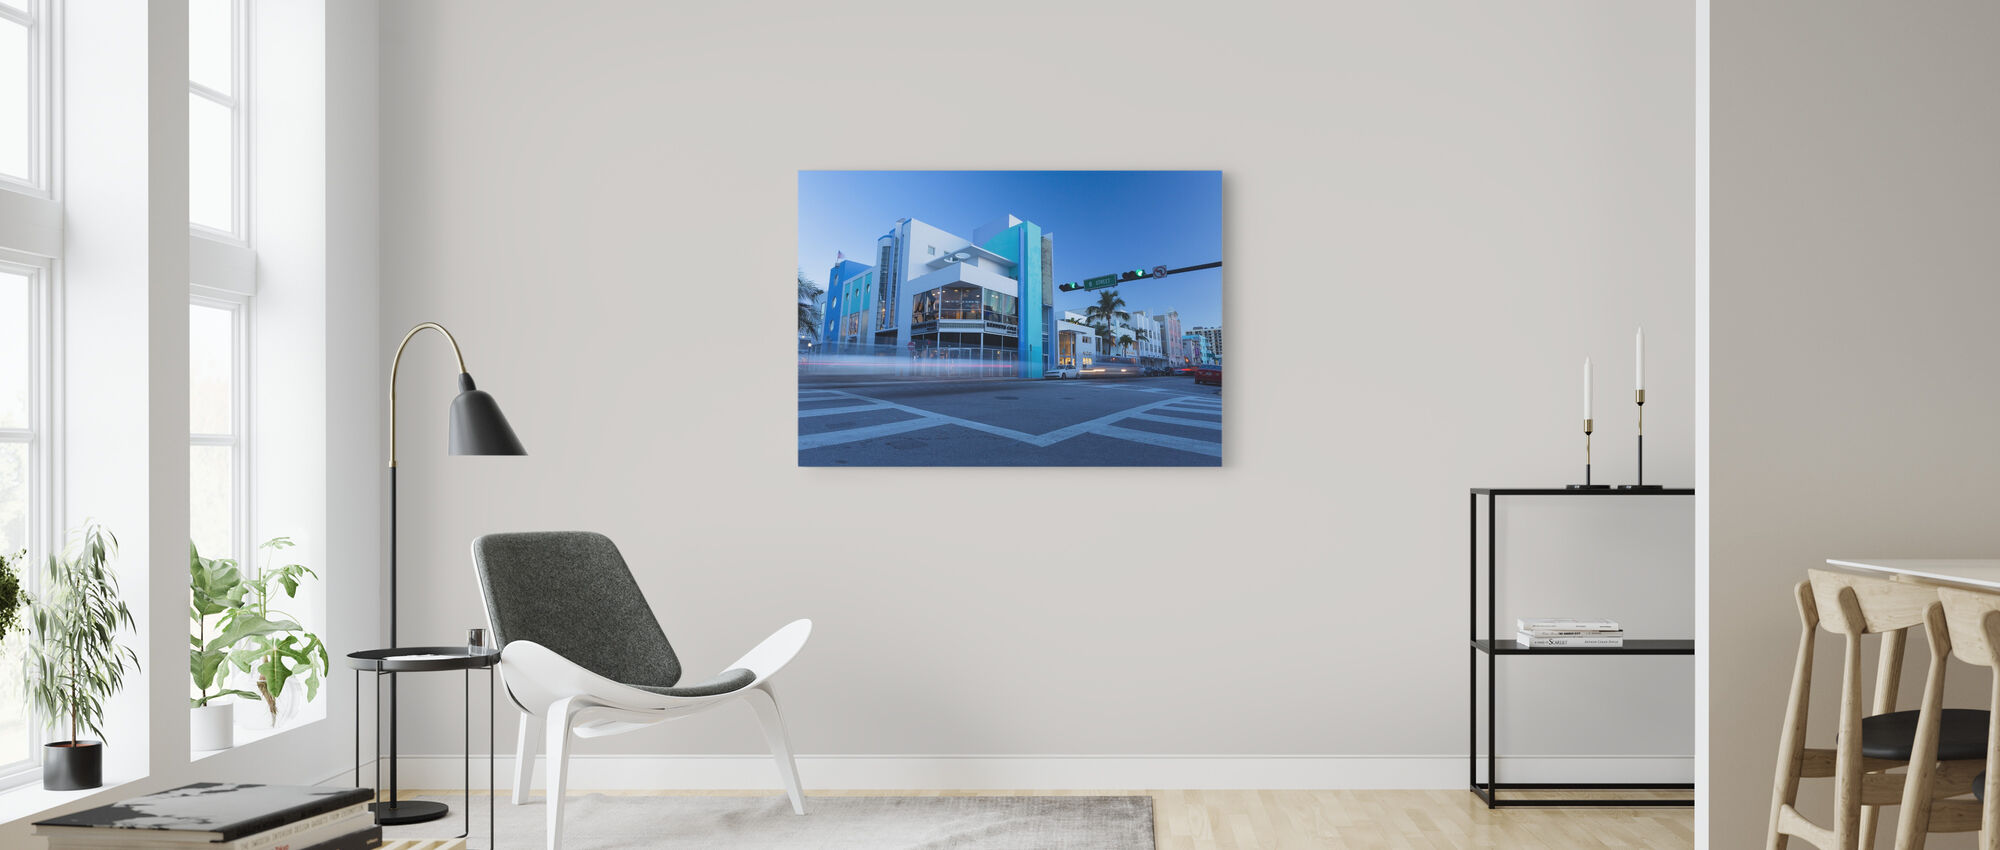 8 Street in Miami, Florida - Canvas print - Woonkamer